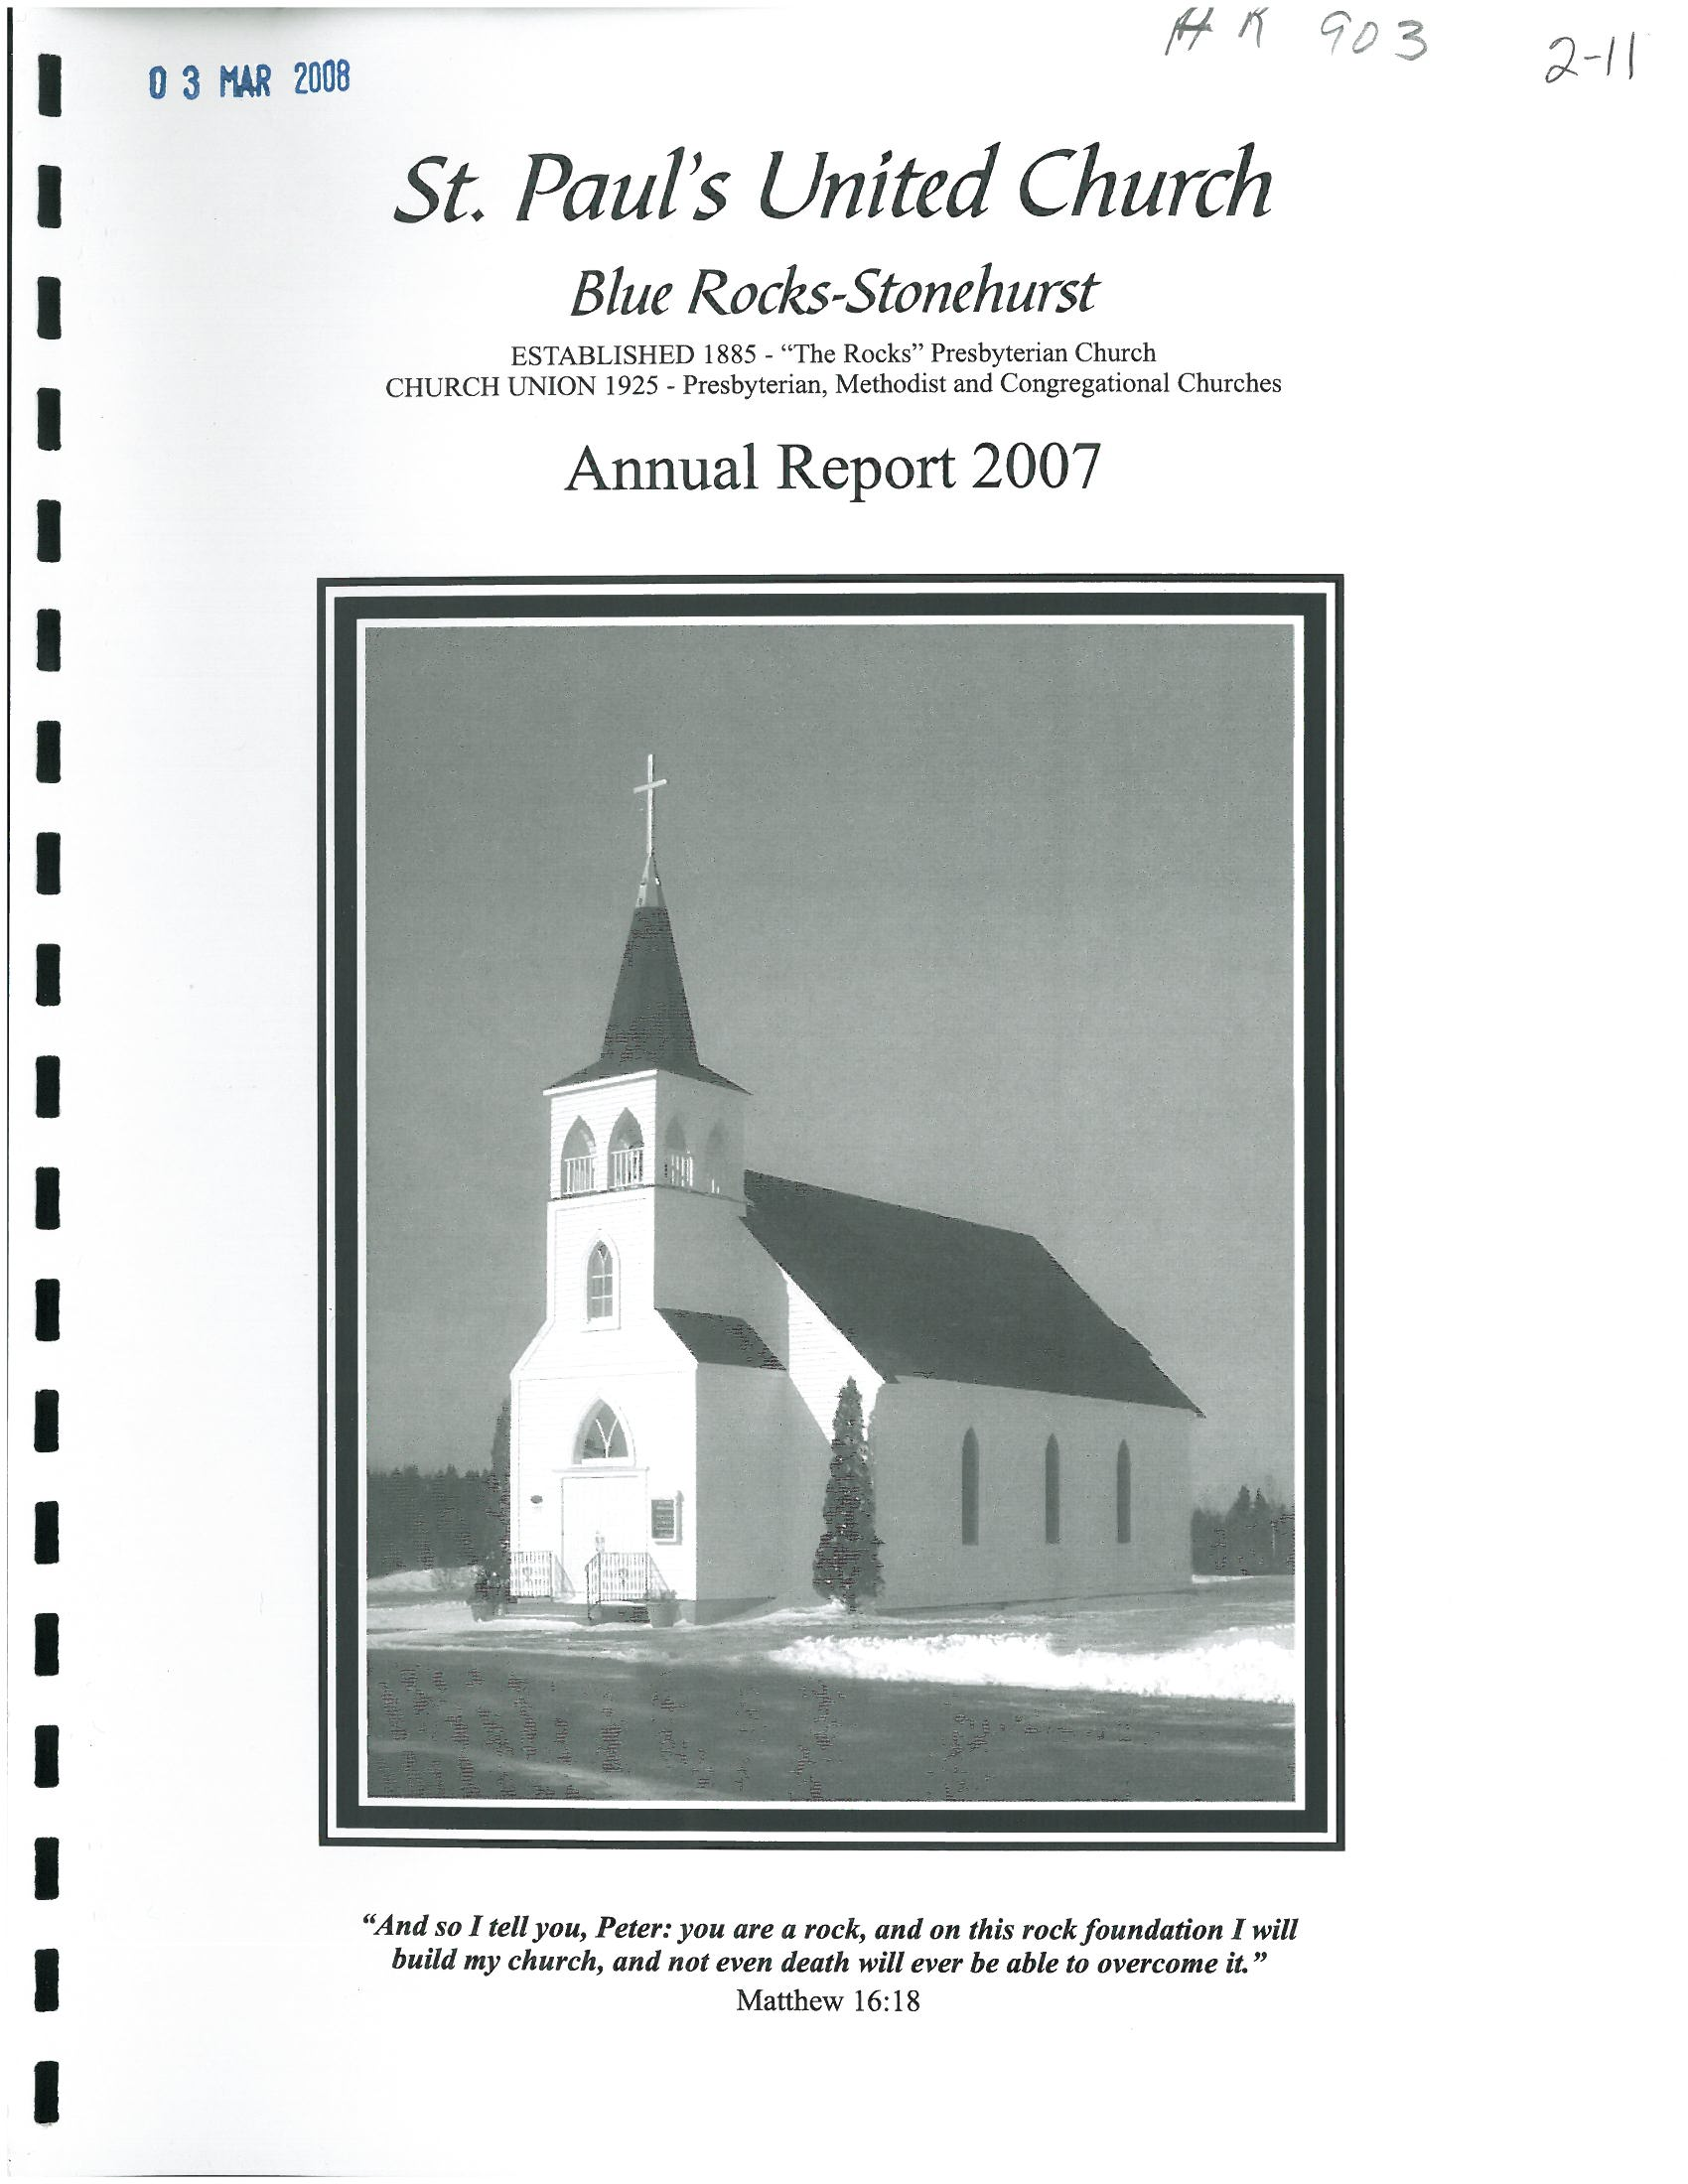 Blue Rocks-Stonehurst Pastoral Charge records listing